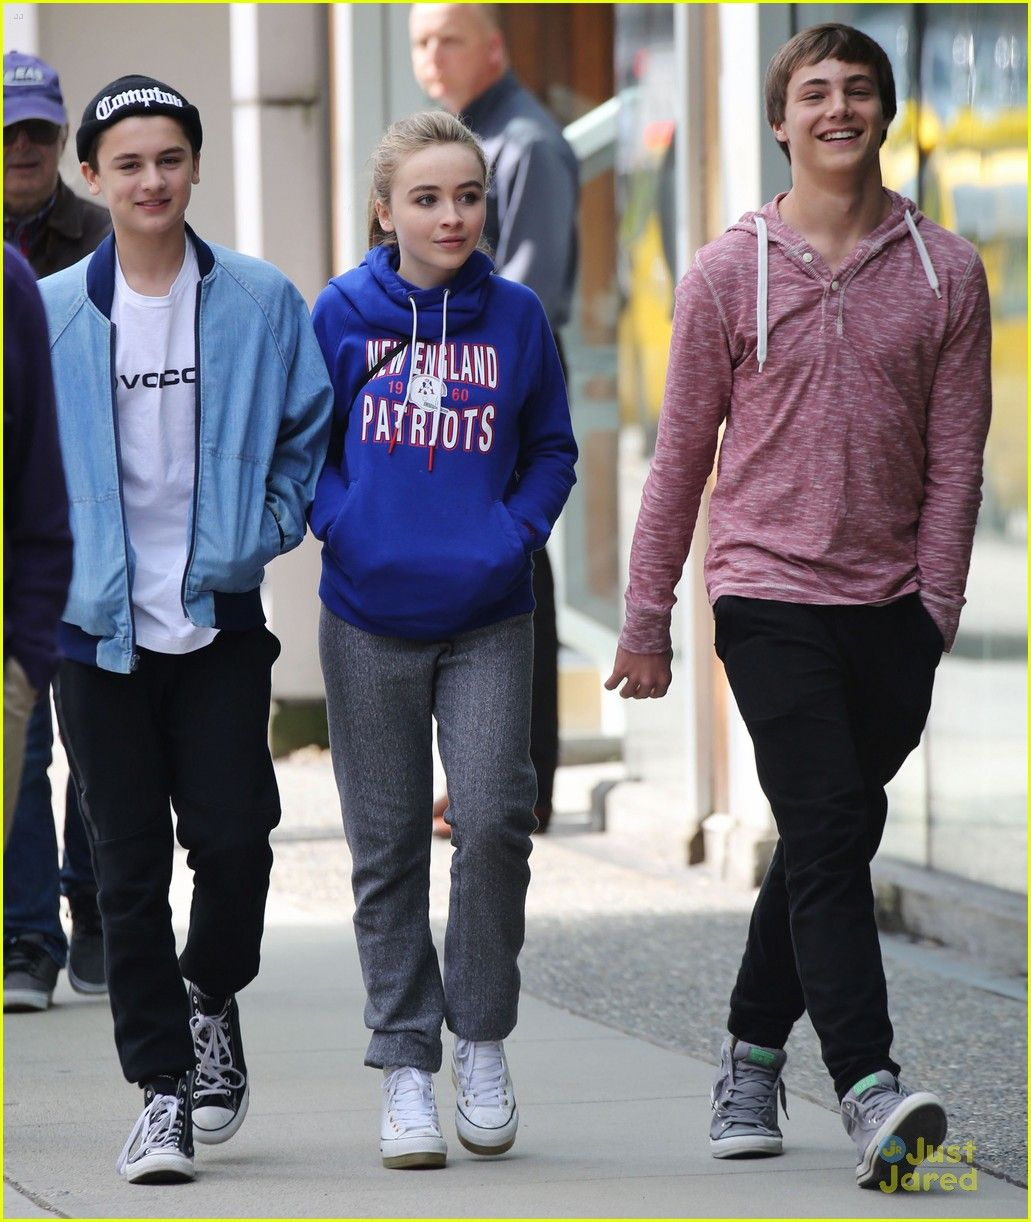 Sabrina Carpenter Is Wearing A Patriots Hoodie I Love Her Music